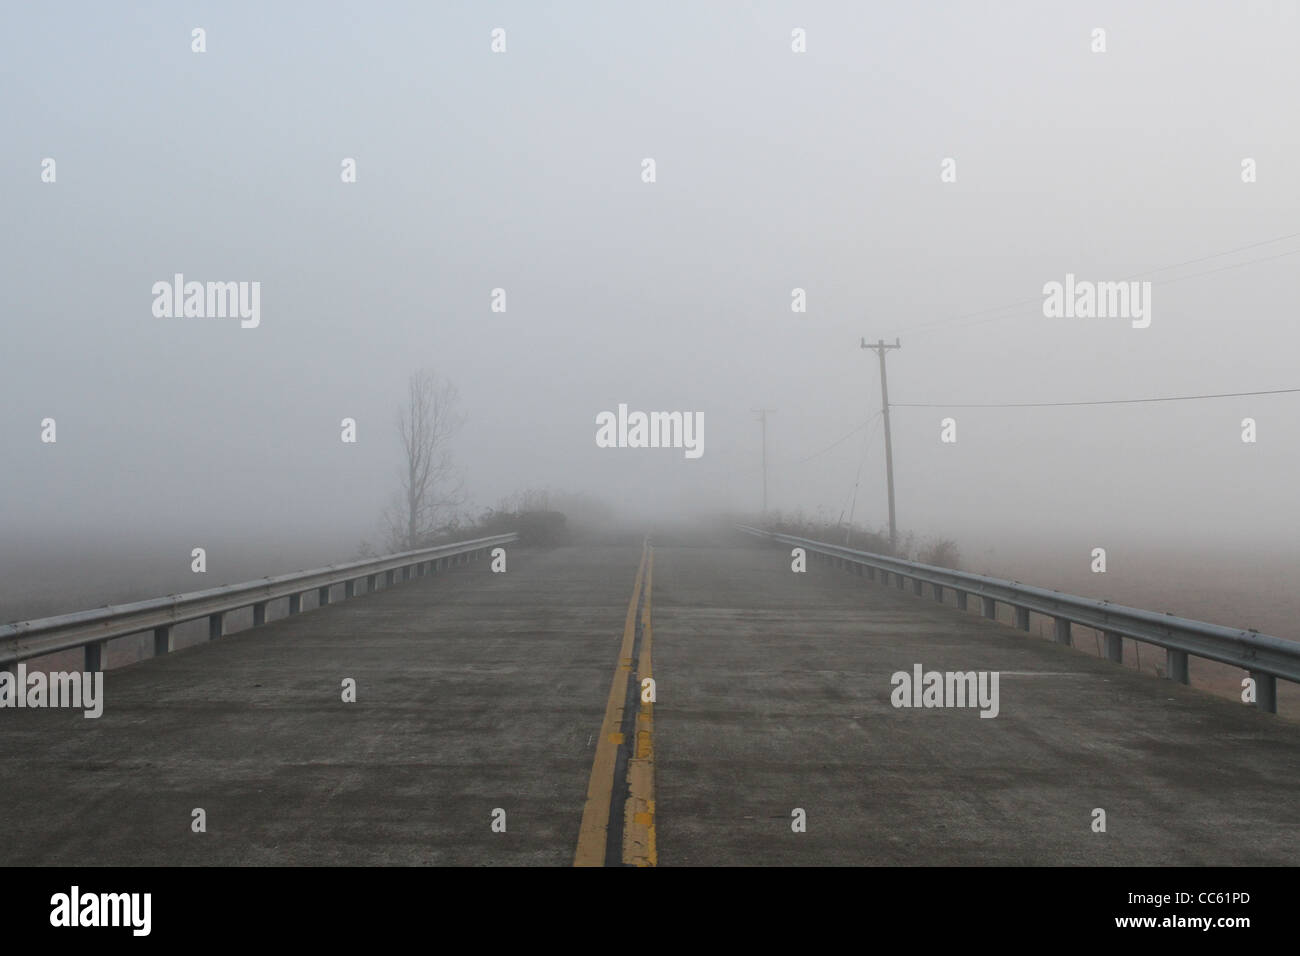 A road in fog seemingly leading to nowhere. - Stock Image